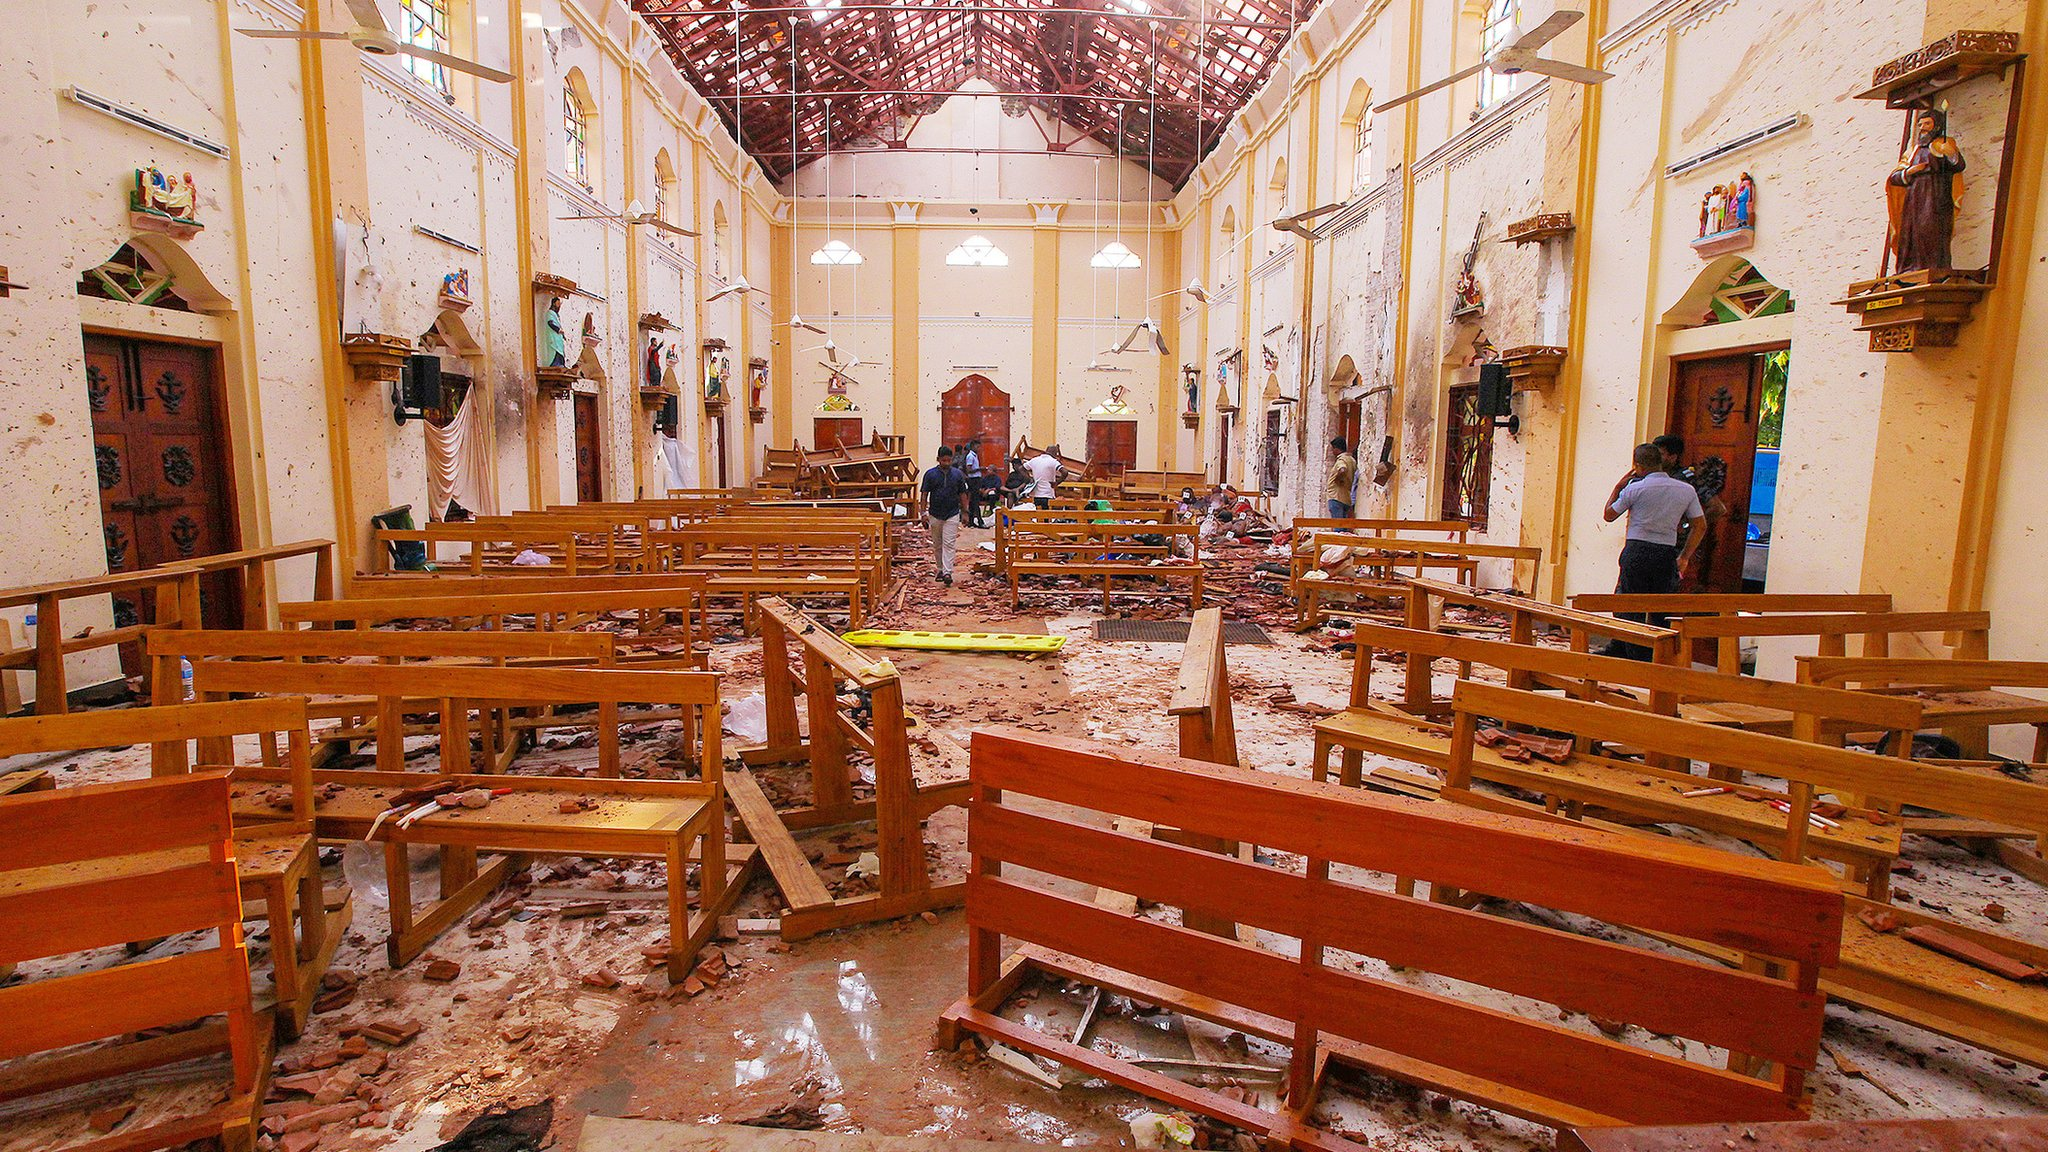 Inside church after the blast